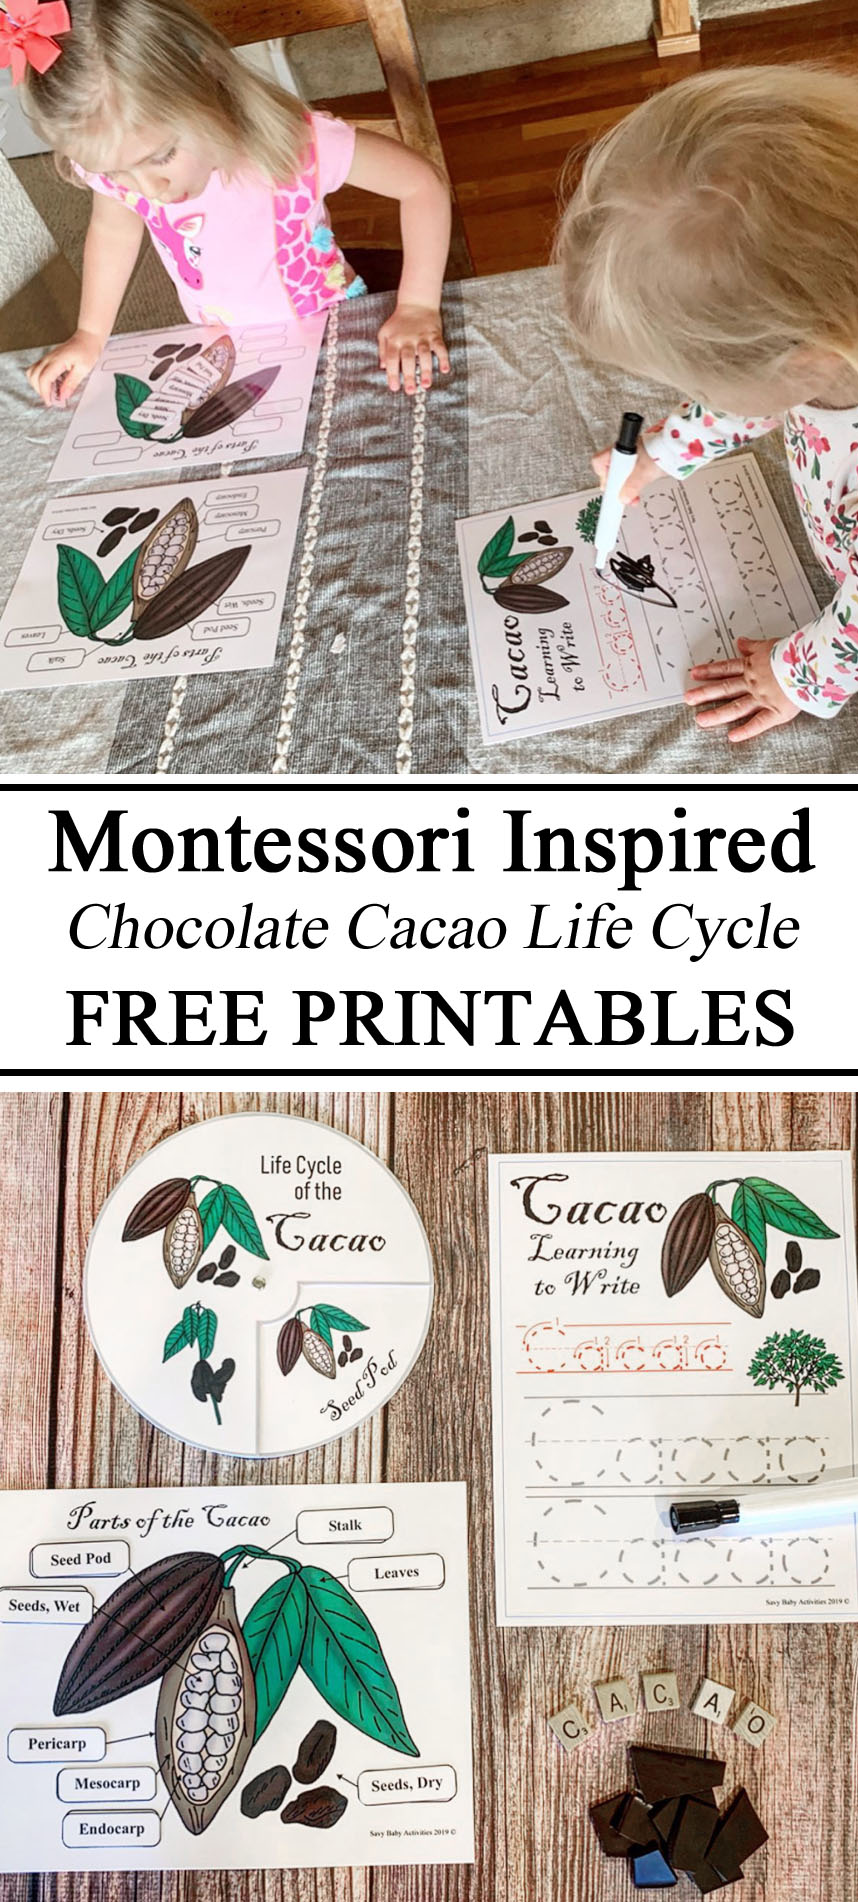 Cocoa, cacao, chocolate Montessori Inspired Resources Learning Pack Learn Educational Printables FREE Download Life Cycle Color Drawings Learning to Write Parts of Sensory Activity Tasting Homeschool Guatemala South American Unit Study Studies Unschooling PreK Preschool Kindergarten